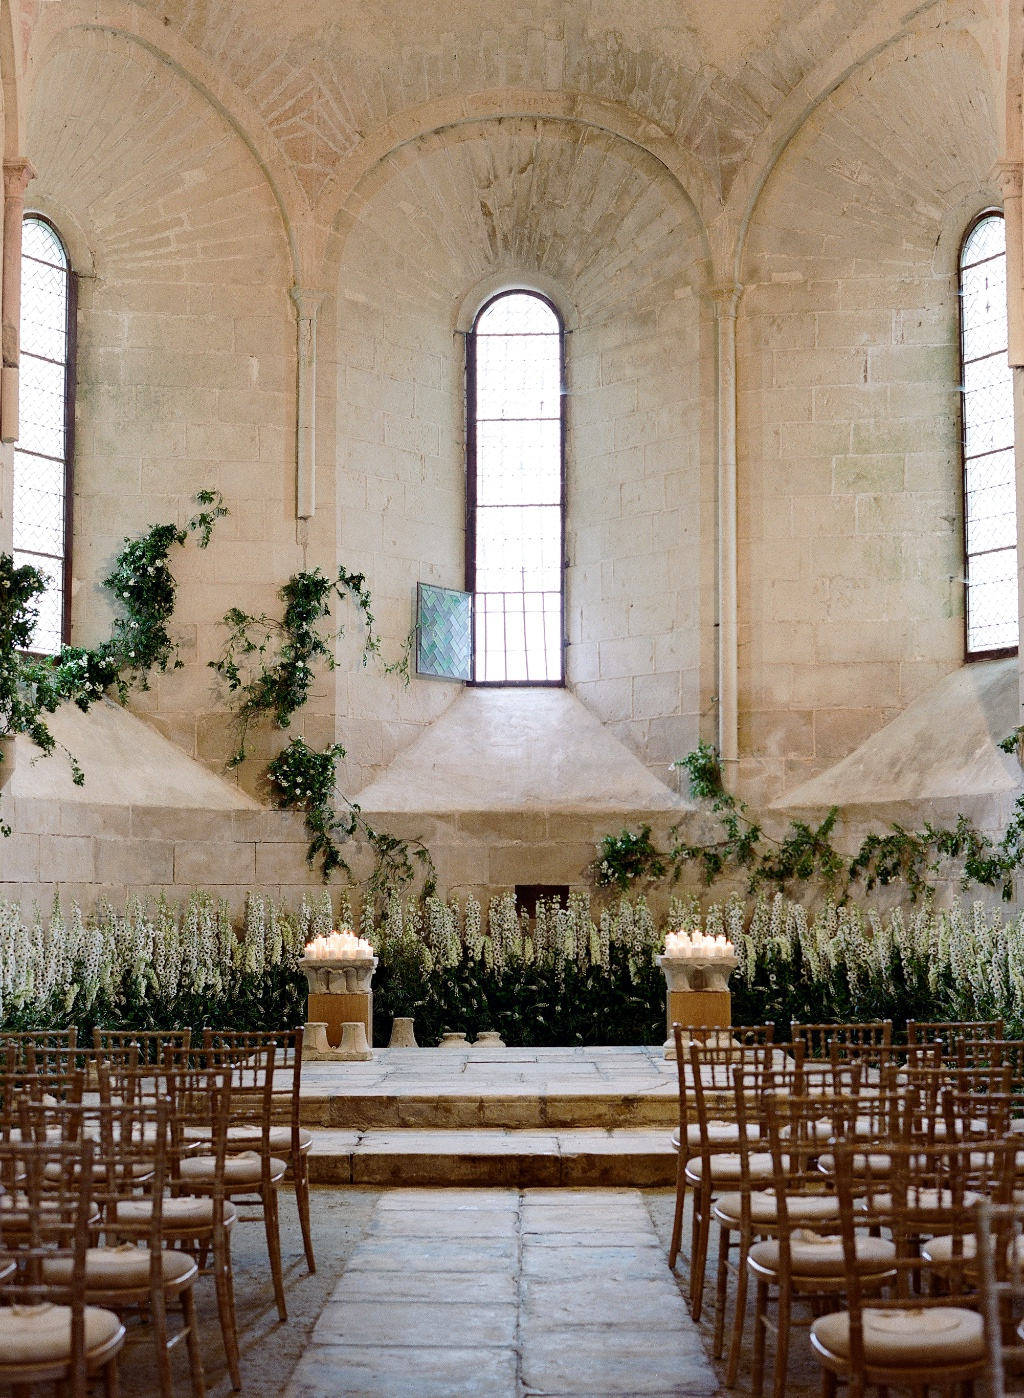 Talk about a romantic backdrop for a wedding ceremony! This medieval chapel was both intimate yet grand for a destination wedding